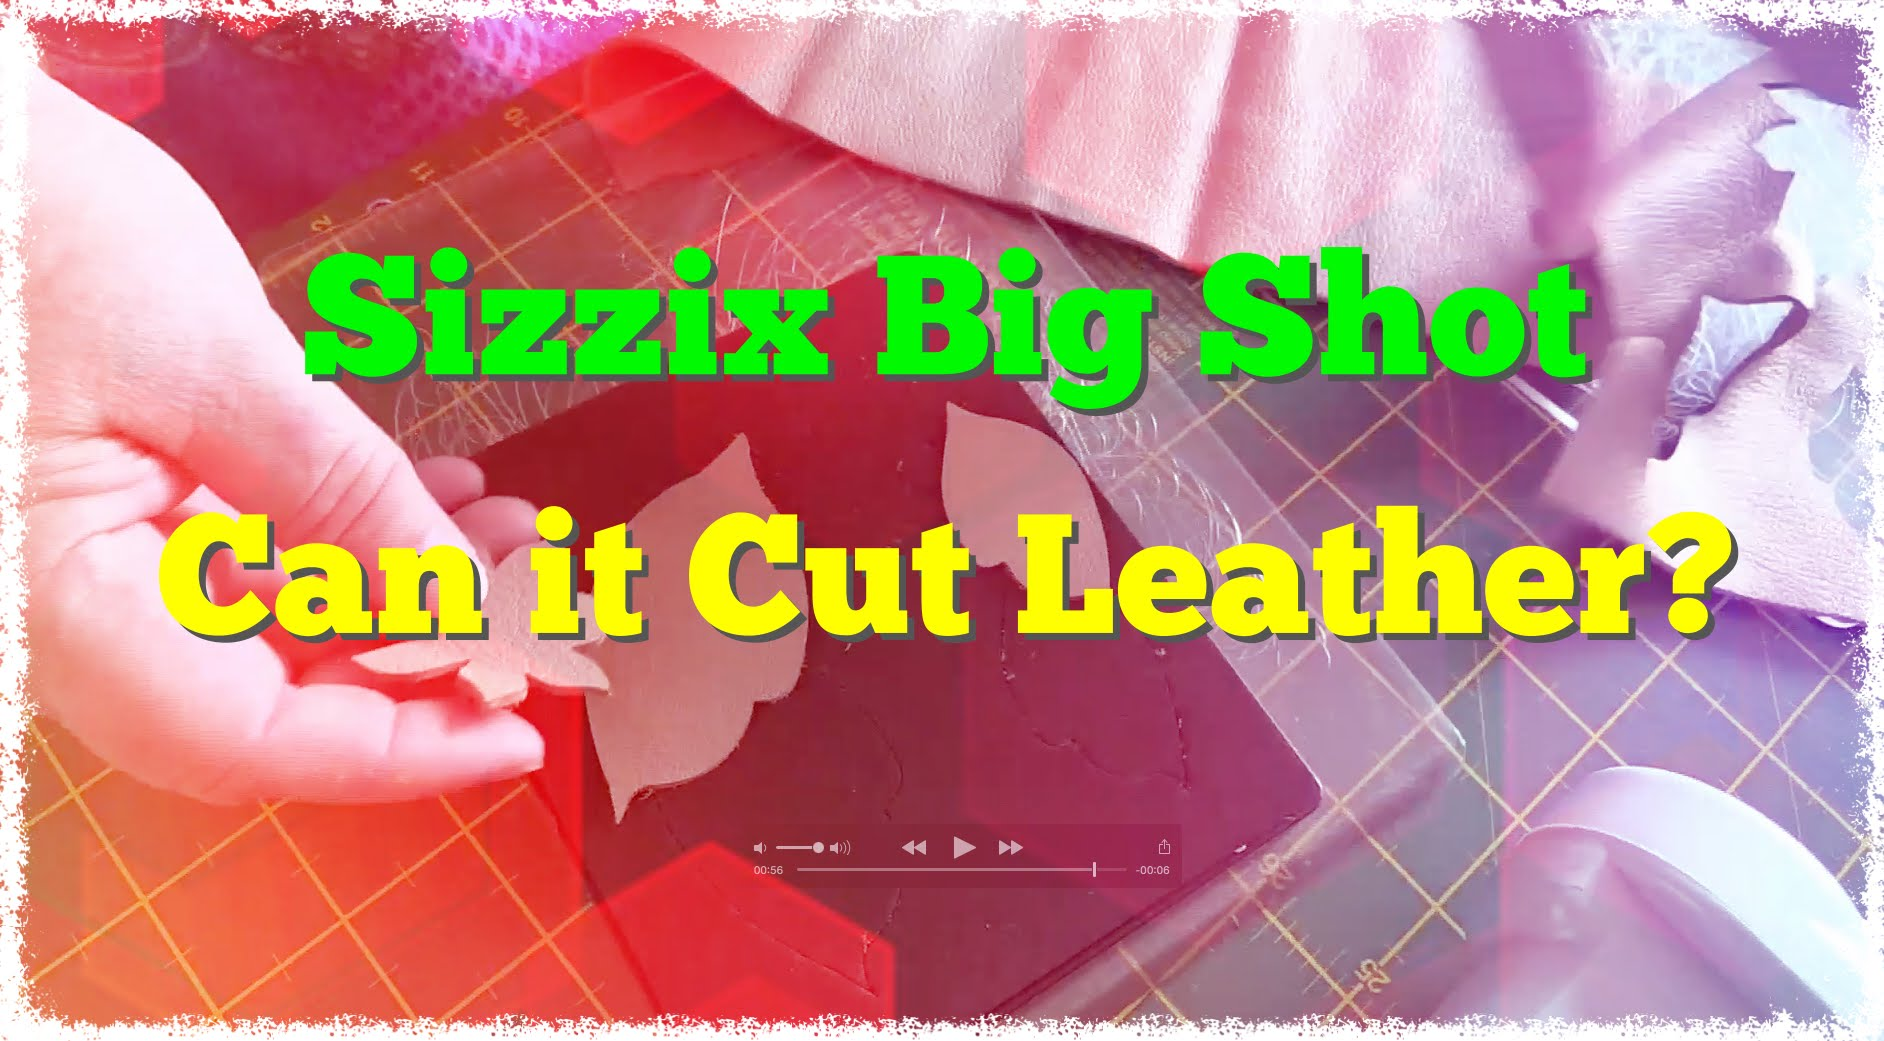 Sizzix Big Shot: Can it Cut Leather?